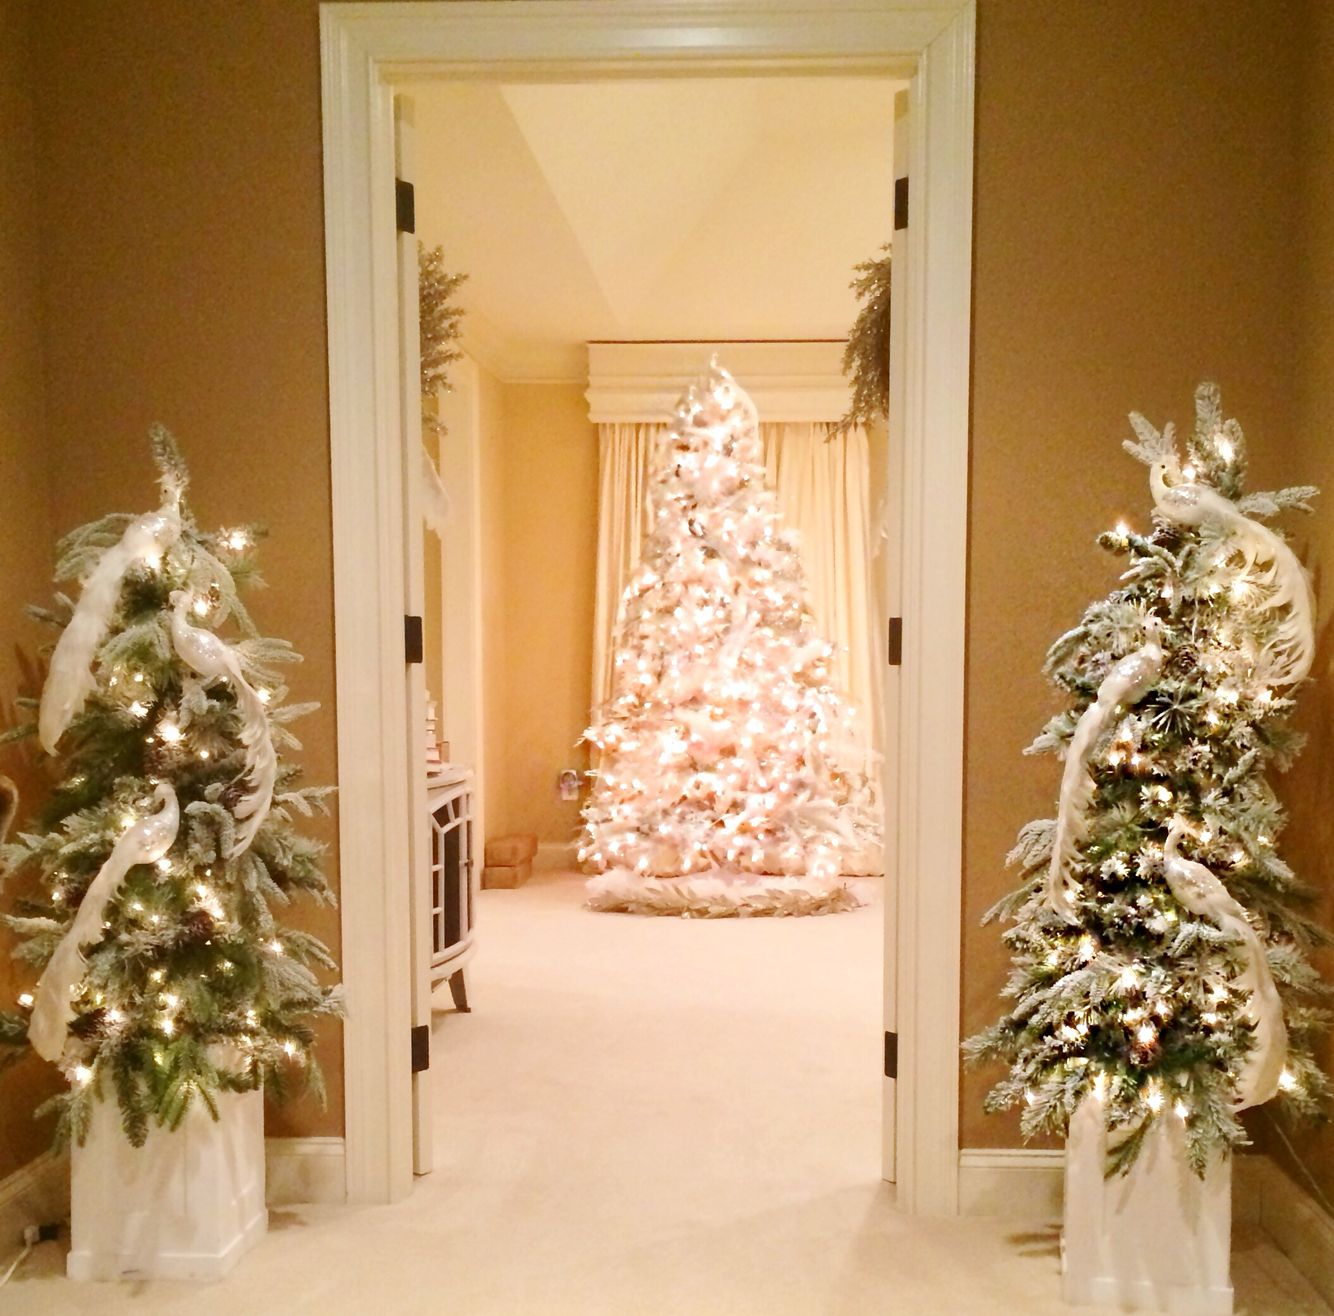 A grand entrance to the Master bedroom Christmas deco